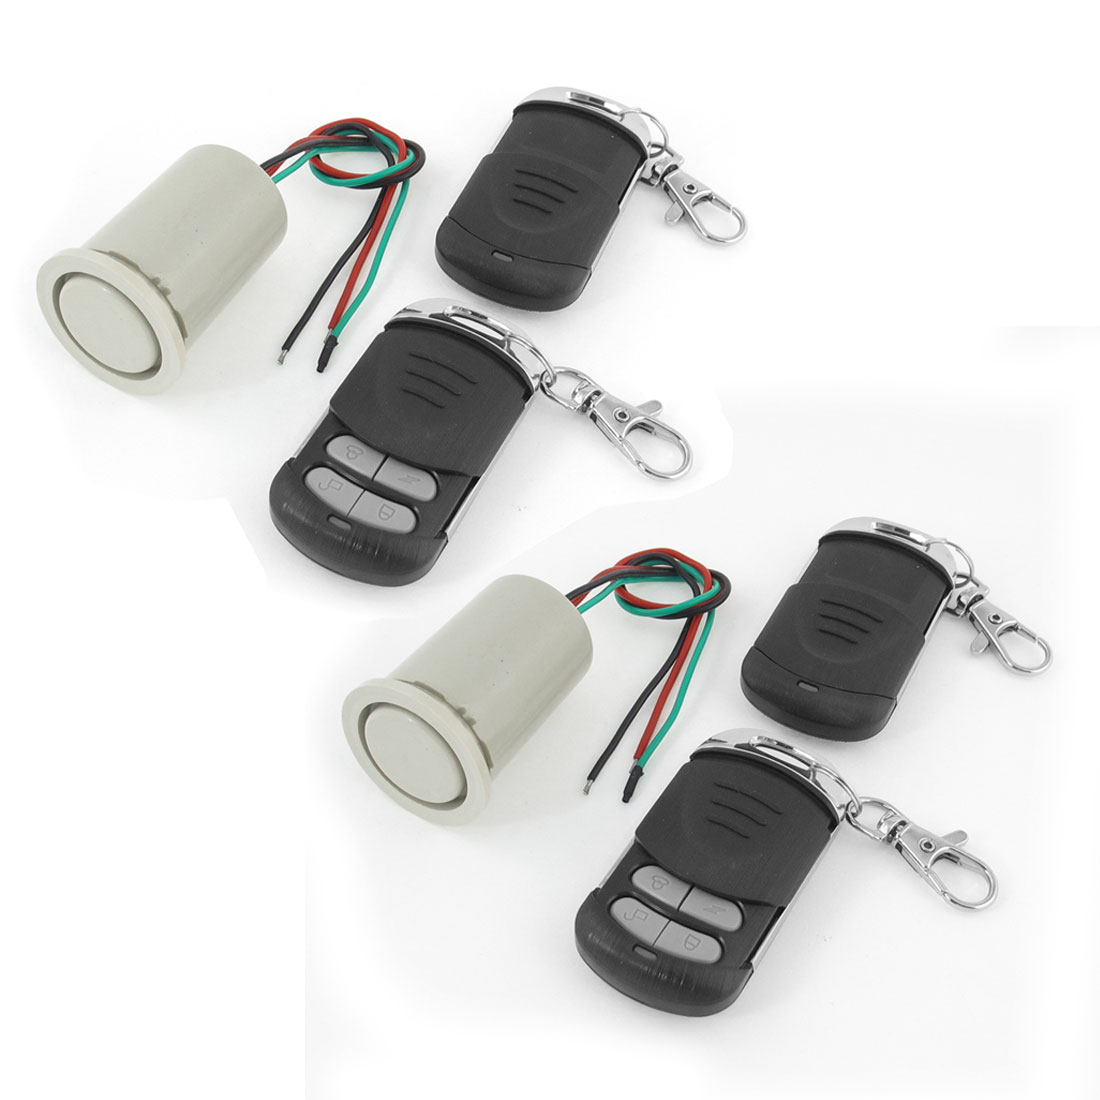 2 Pcs Electronic Motorcycle Alarm + 4 Pcs Lobster Clasp Remote Control Key